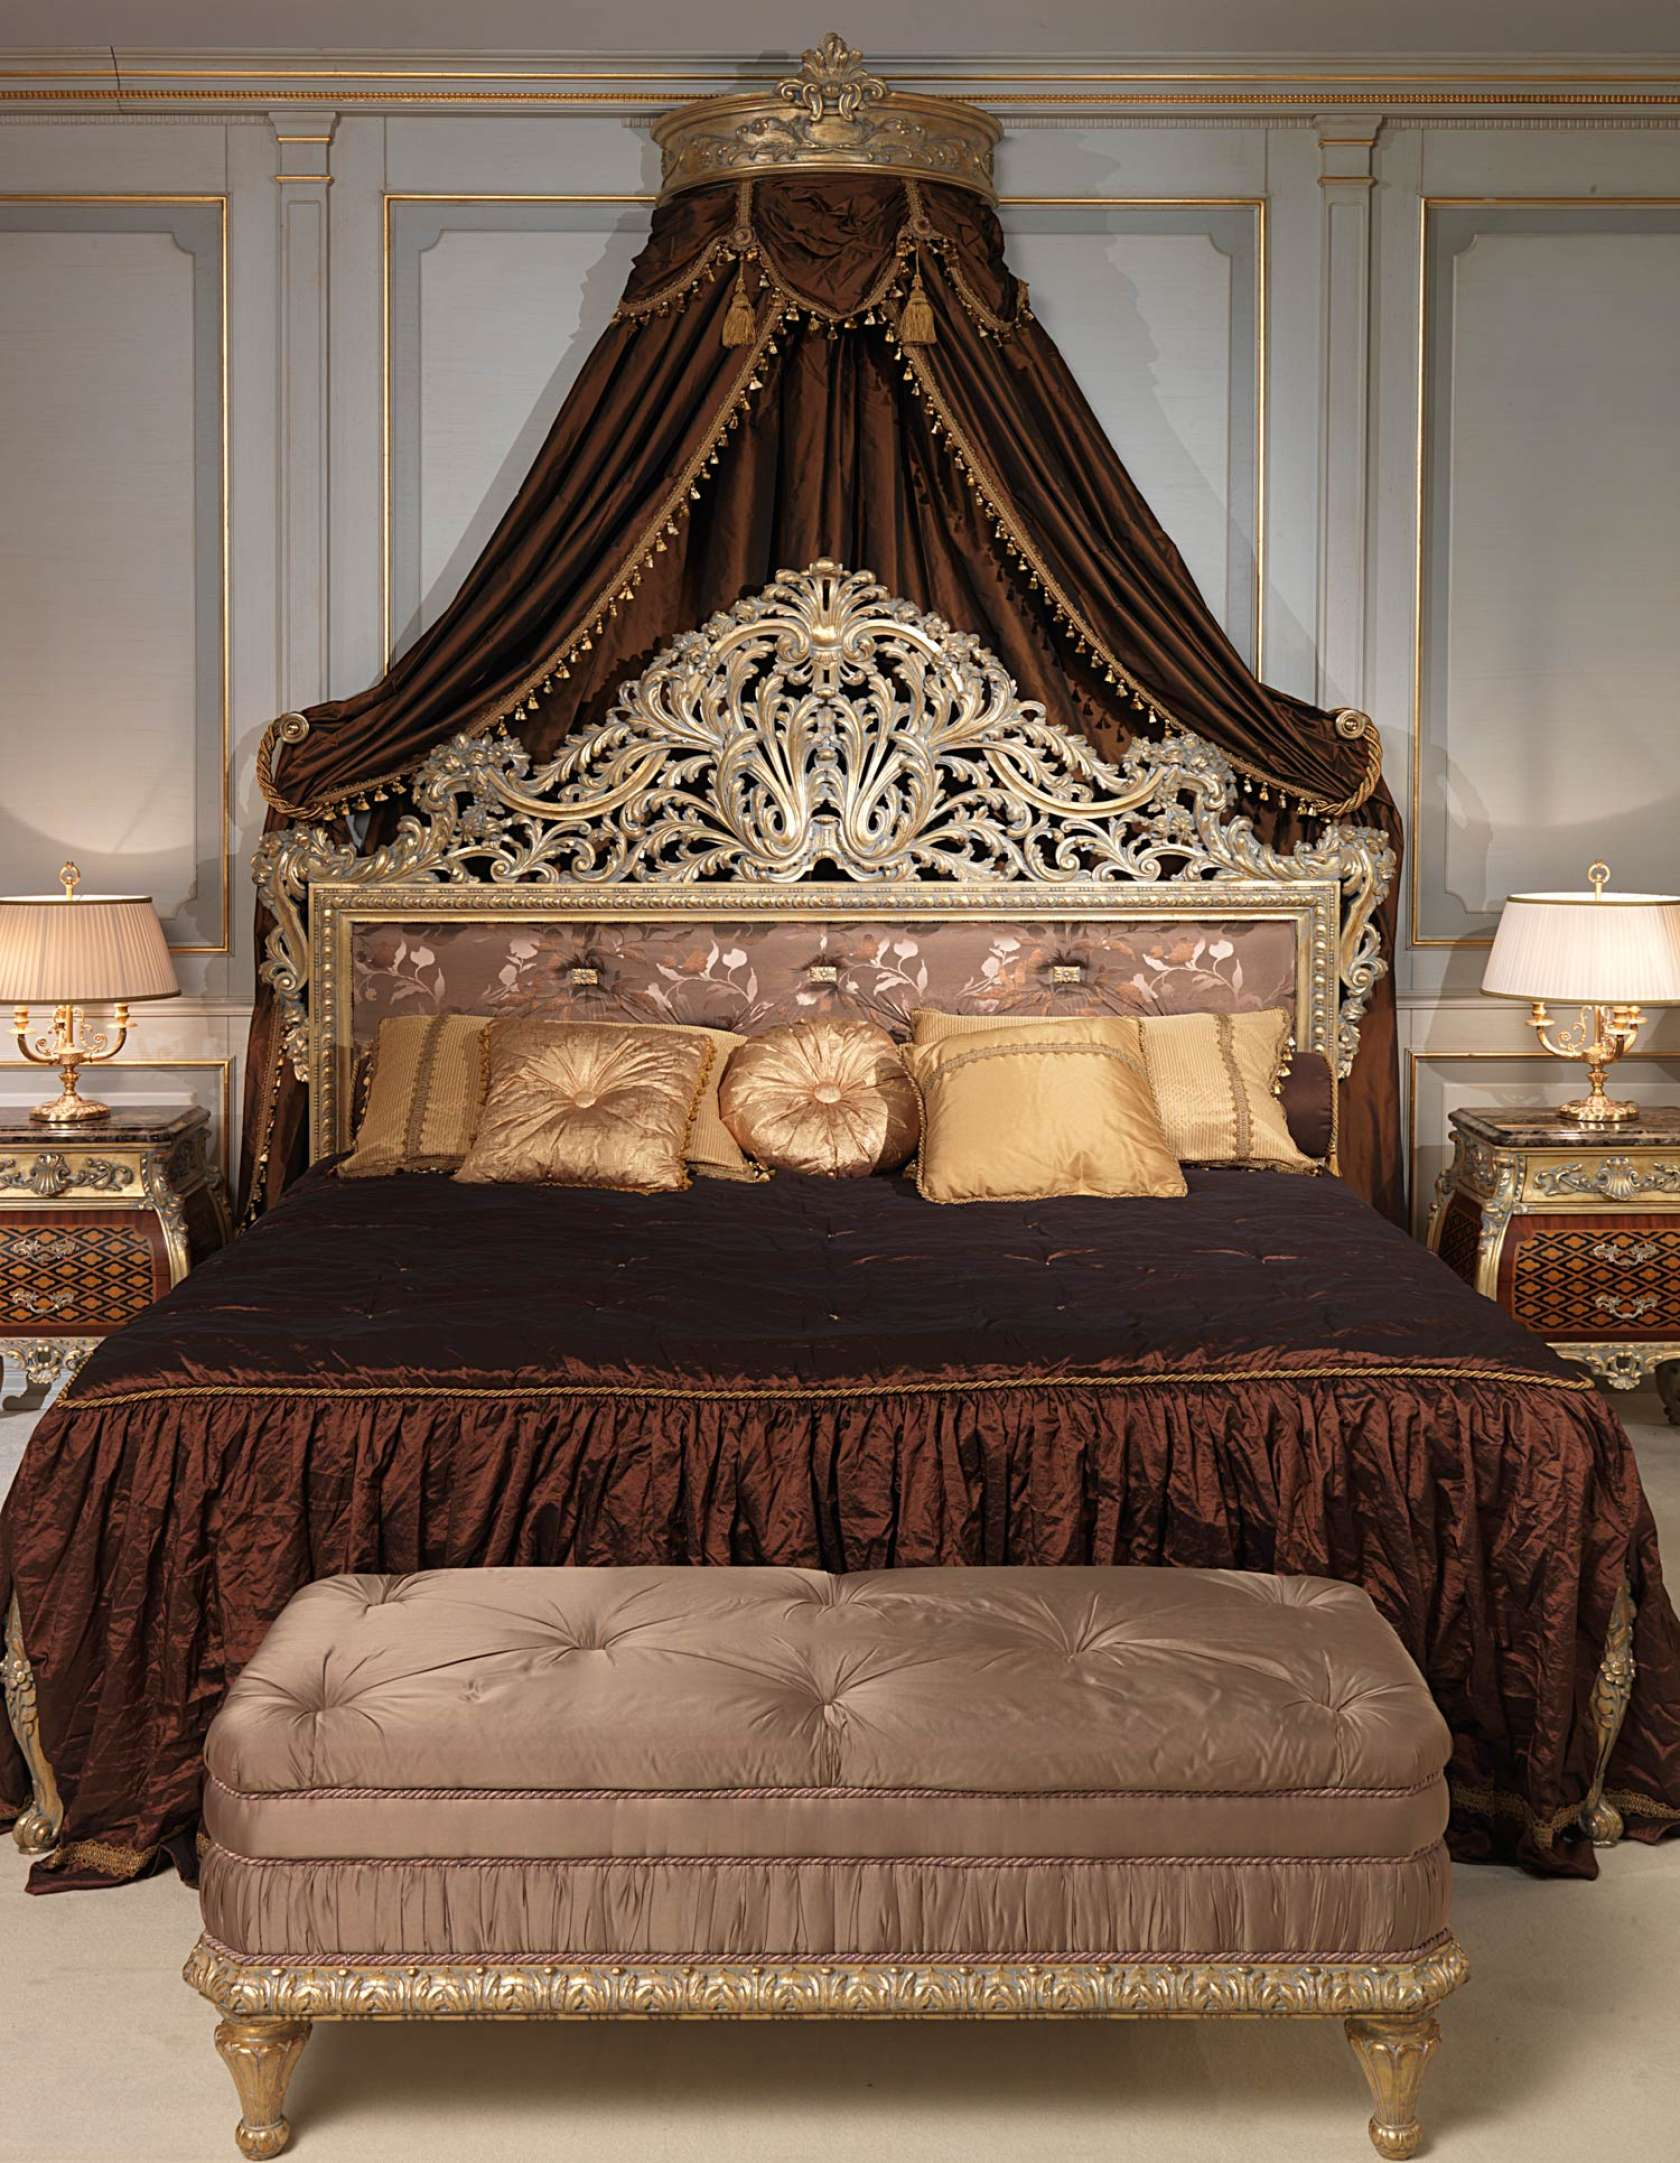 Emperador Gold In Louis XV Bedroom With Carved Bed